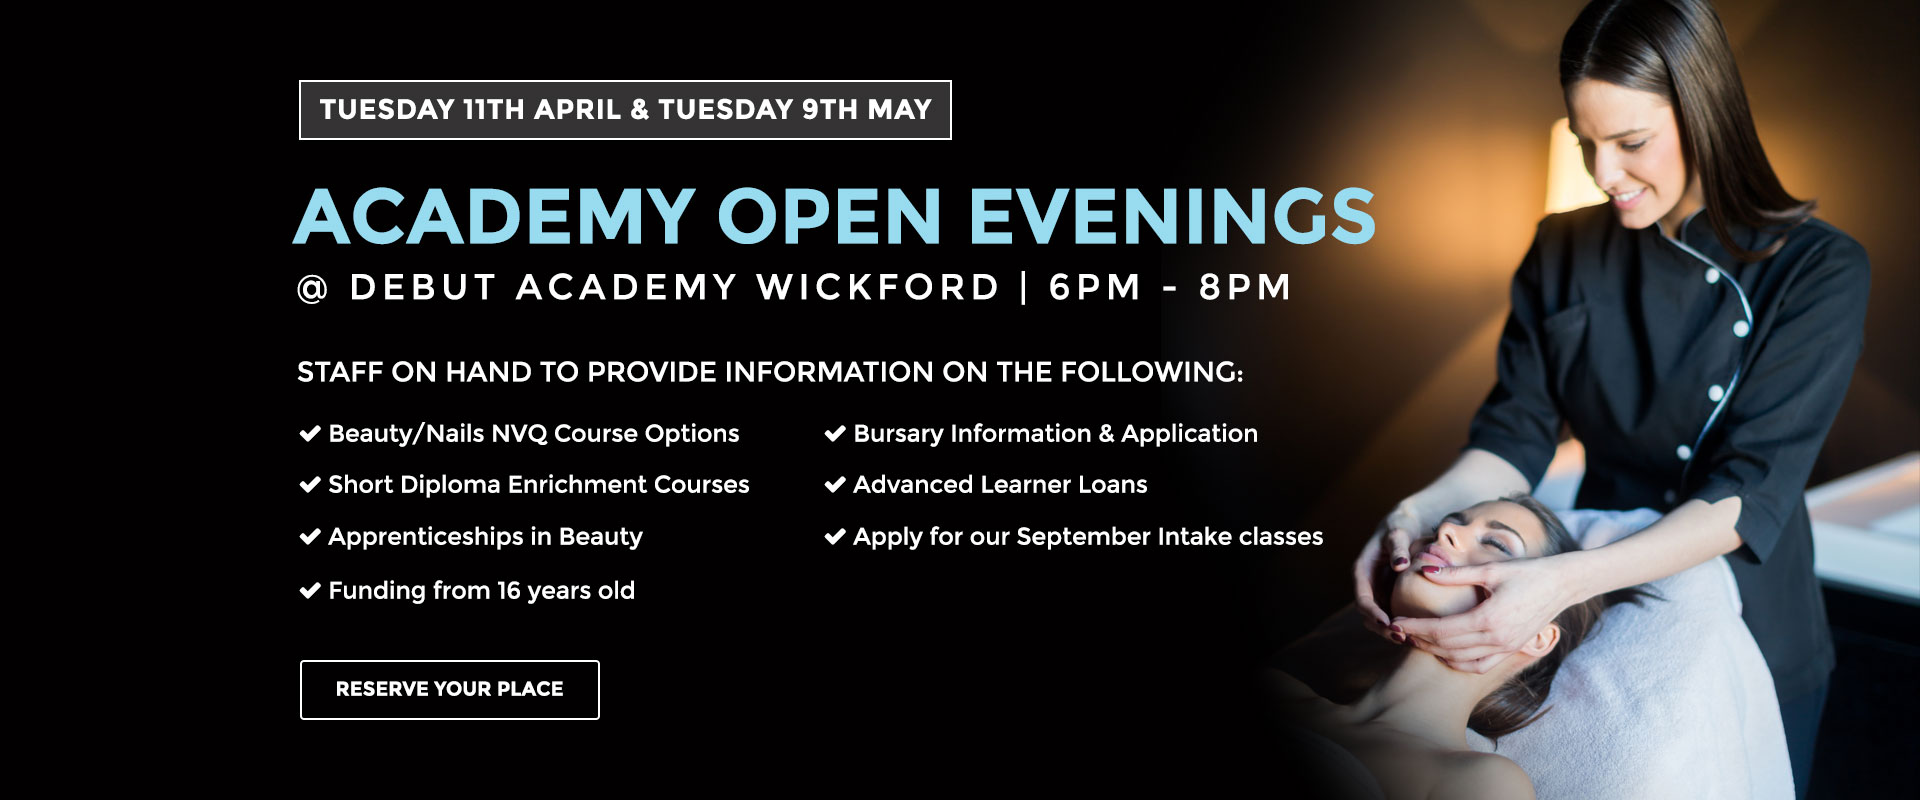 Academy open evening banner